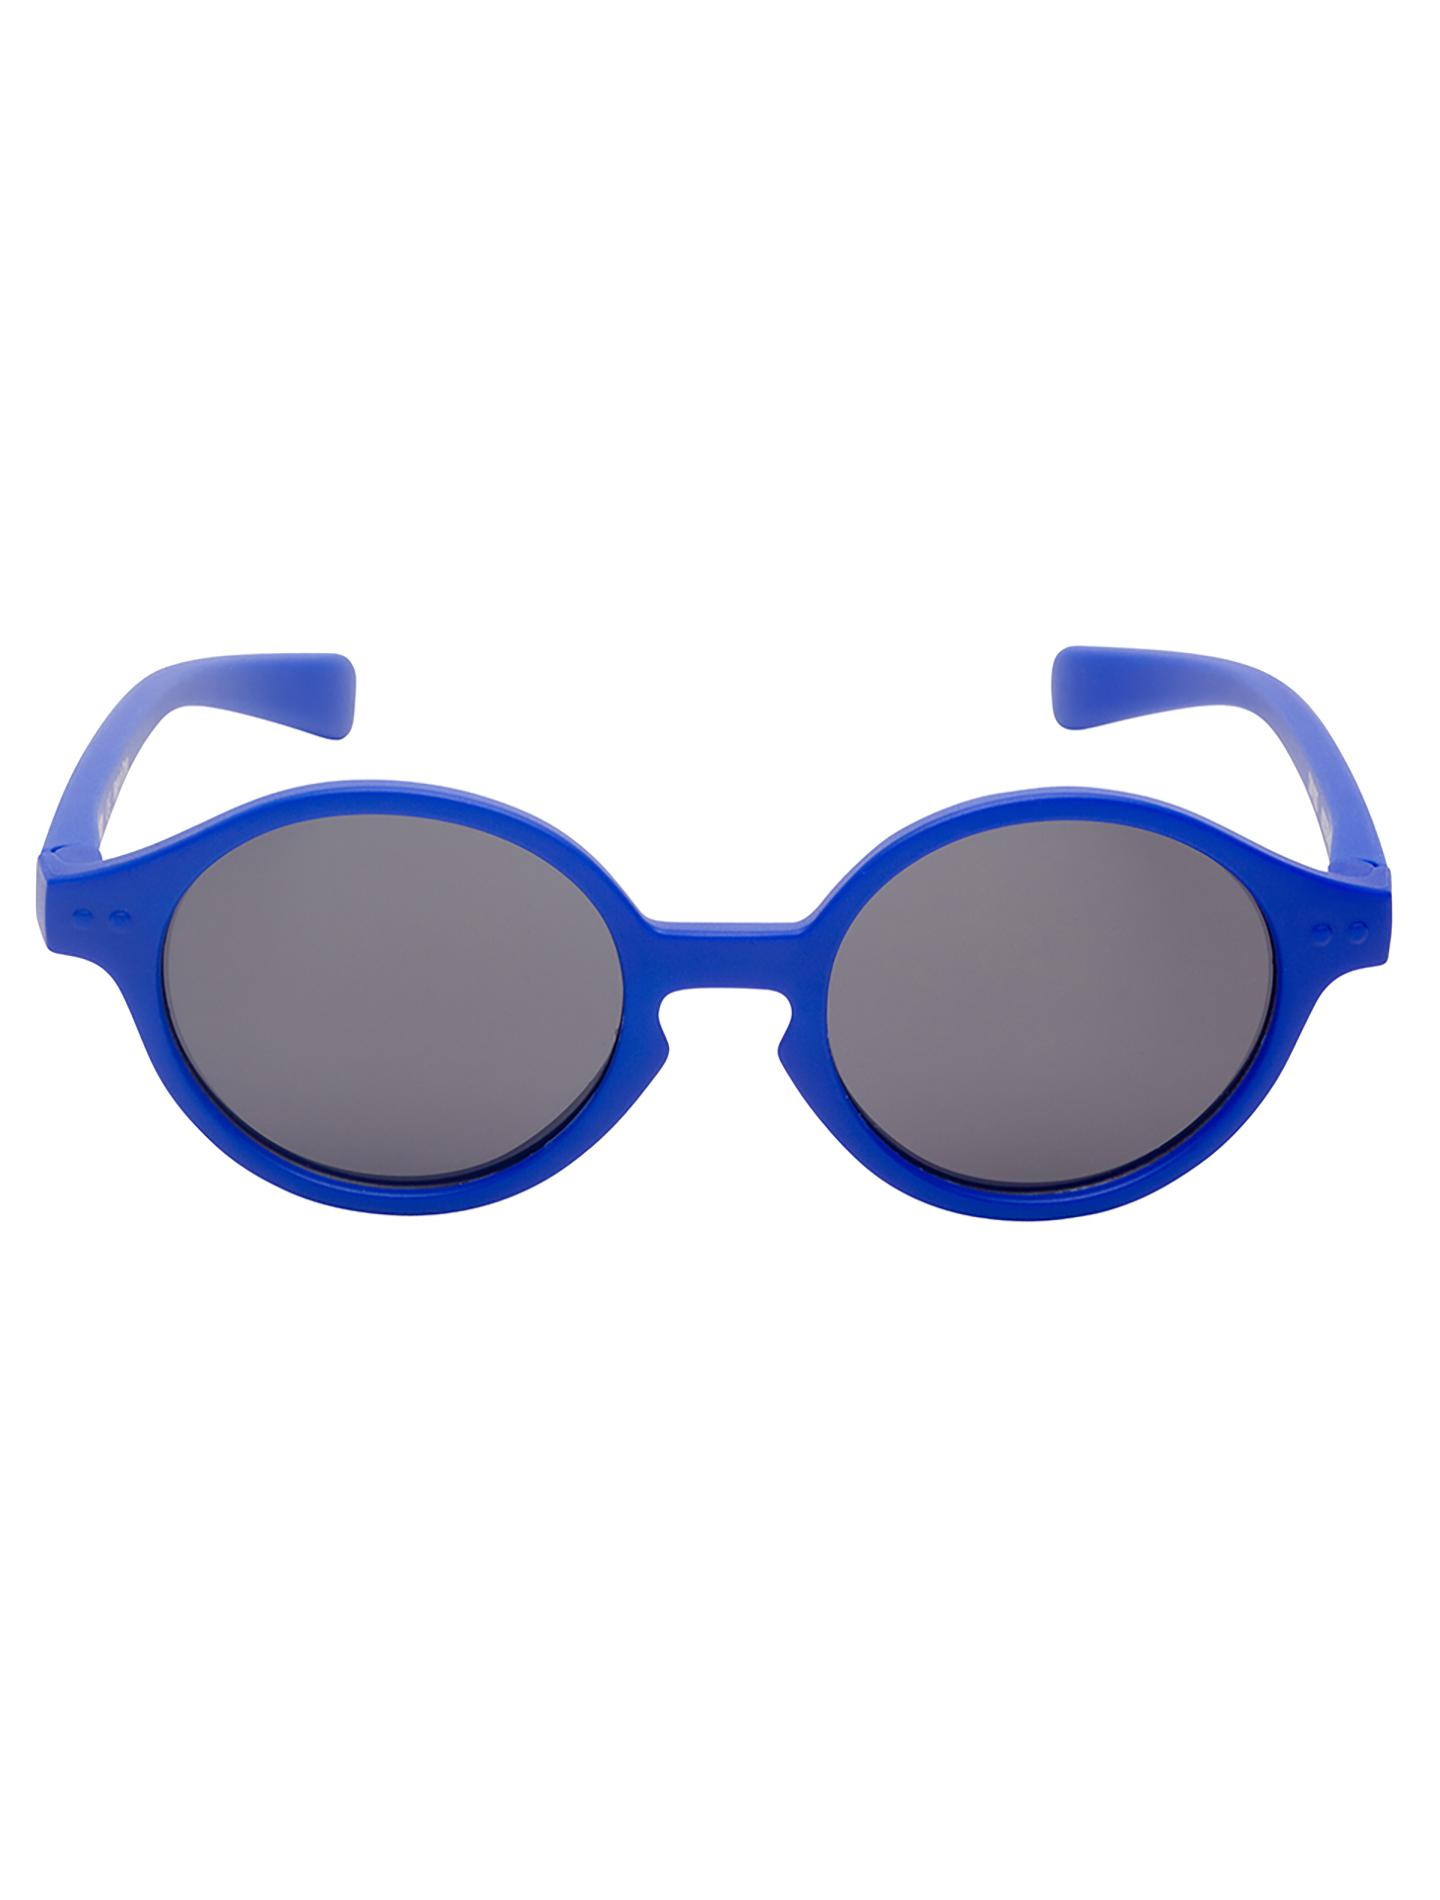 d544b58f104b Lyst - Alternative Apparel Izipizi Kids Sunglasses in Blue for Men